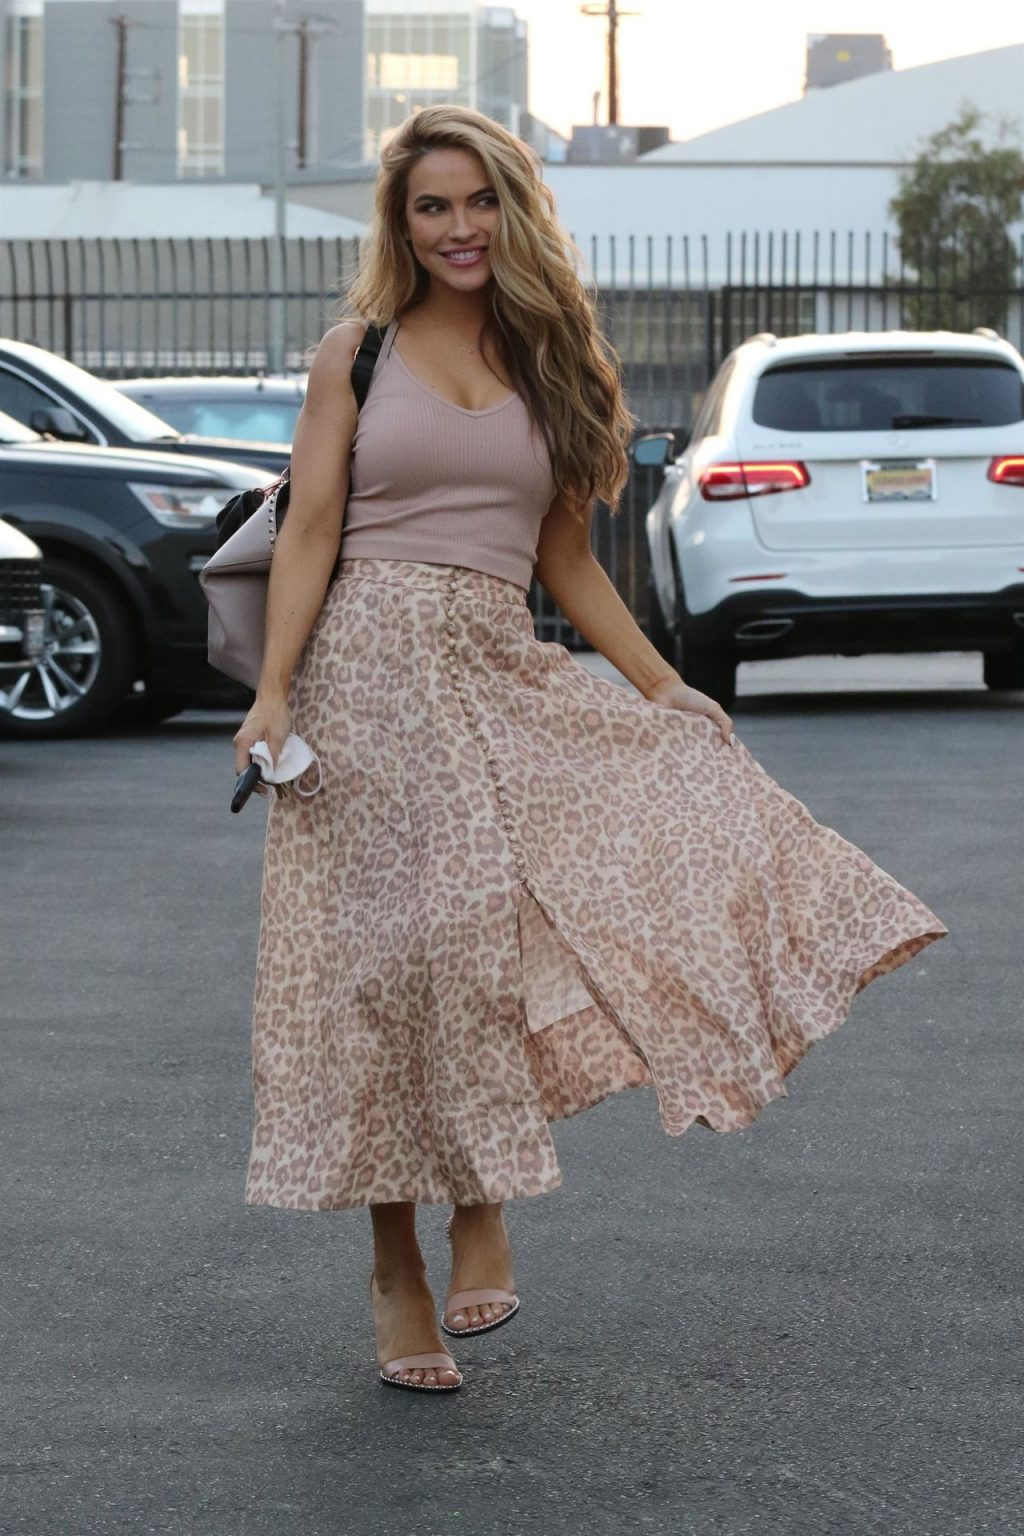 Chrishell Stause is All Smiles Showing Off Her Leopard Skirt Outside the DWTS Dance Studio (55 Photos)